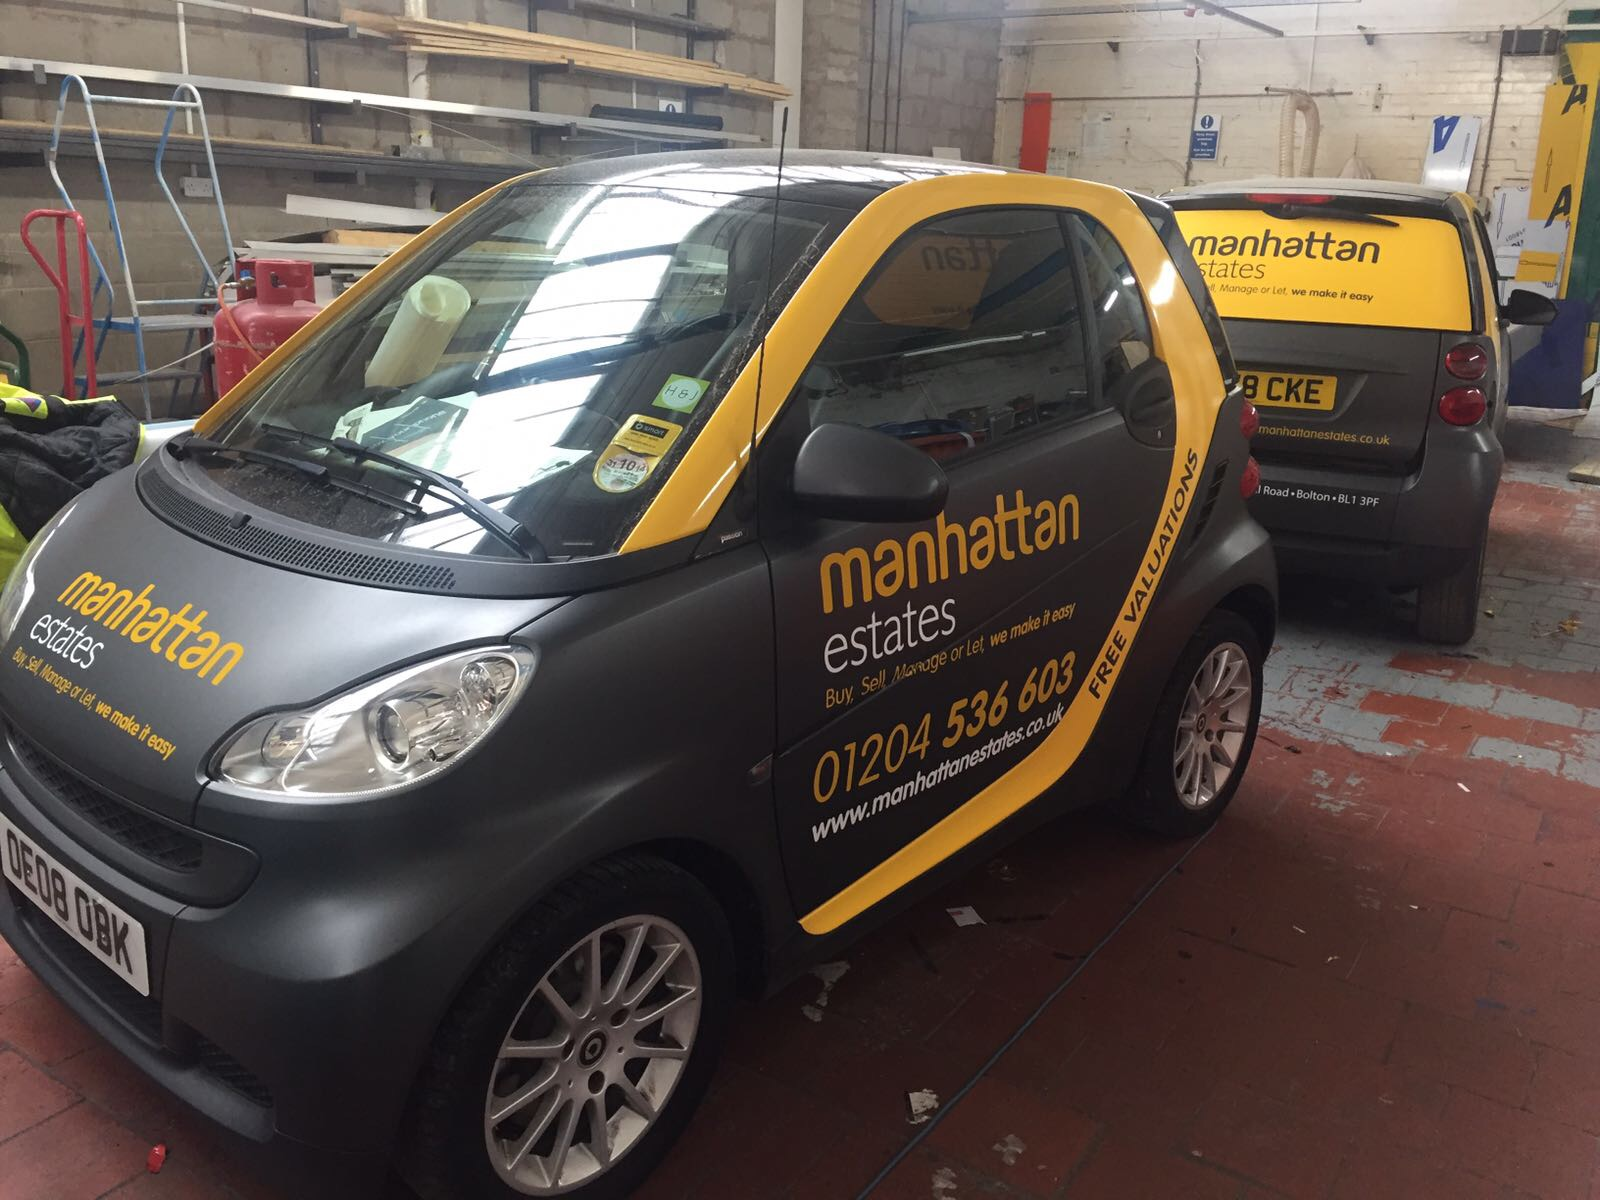 Vehicle wraps for estate agents.